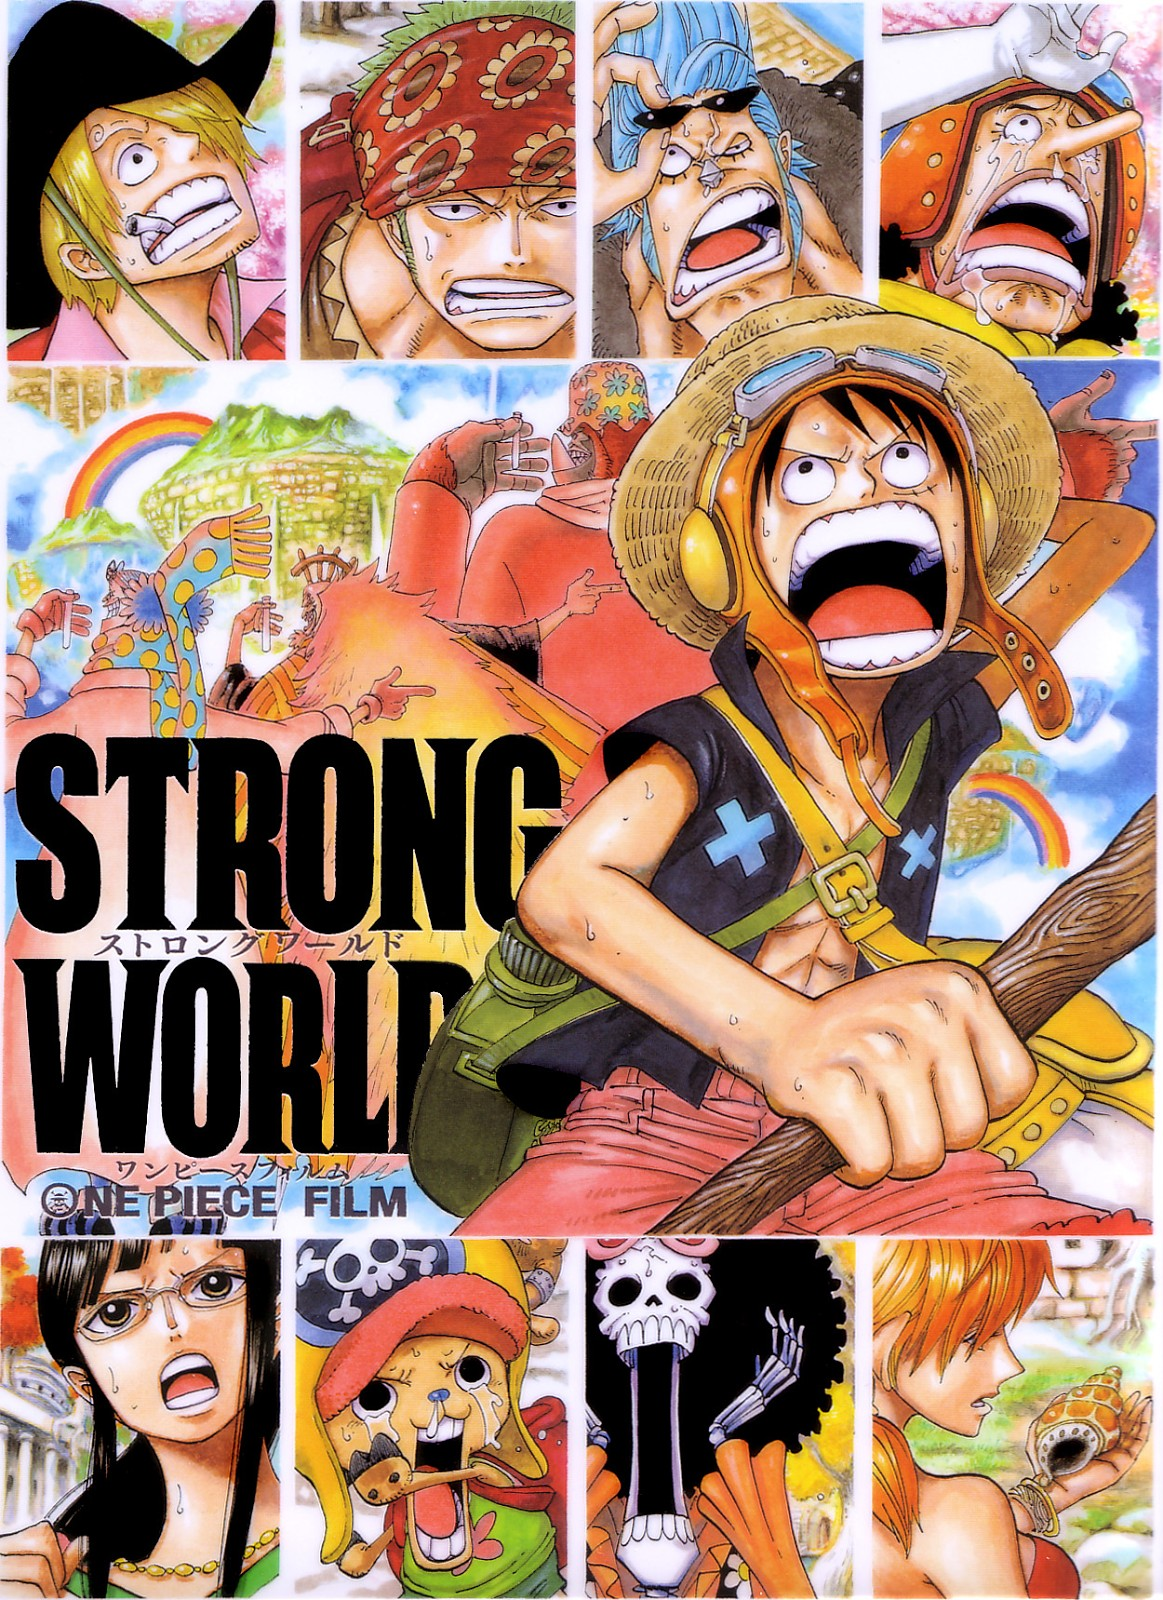 One Piece Film: Strong World (2009) |Castellano| |Película 10| |Mega|